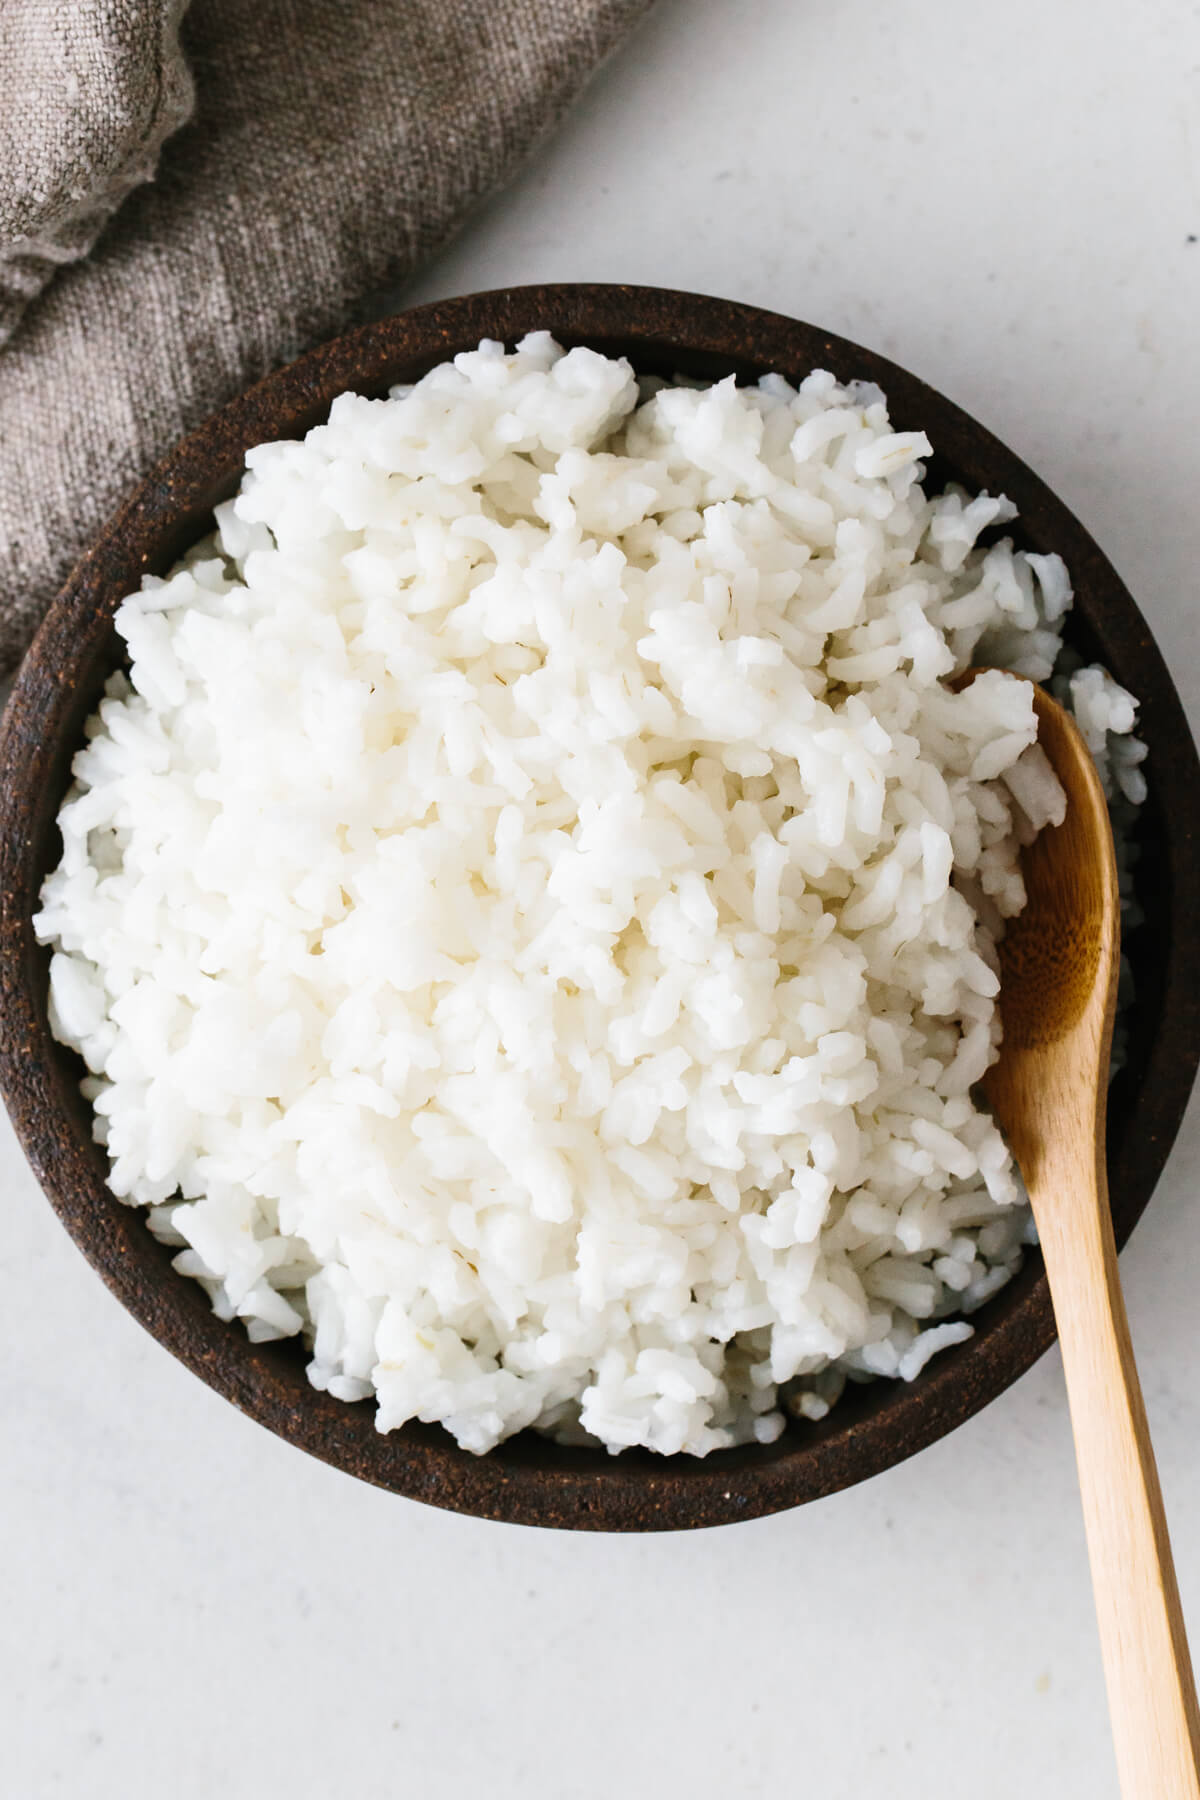 Cooked rice in a bowl with spoon.